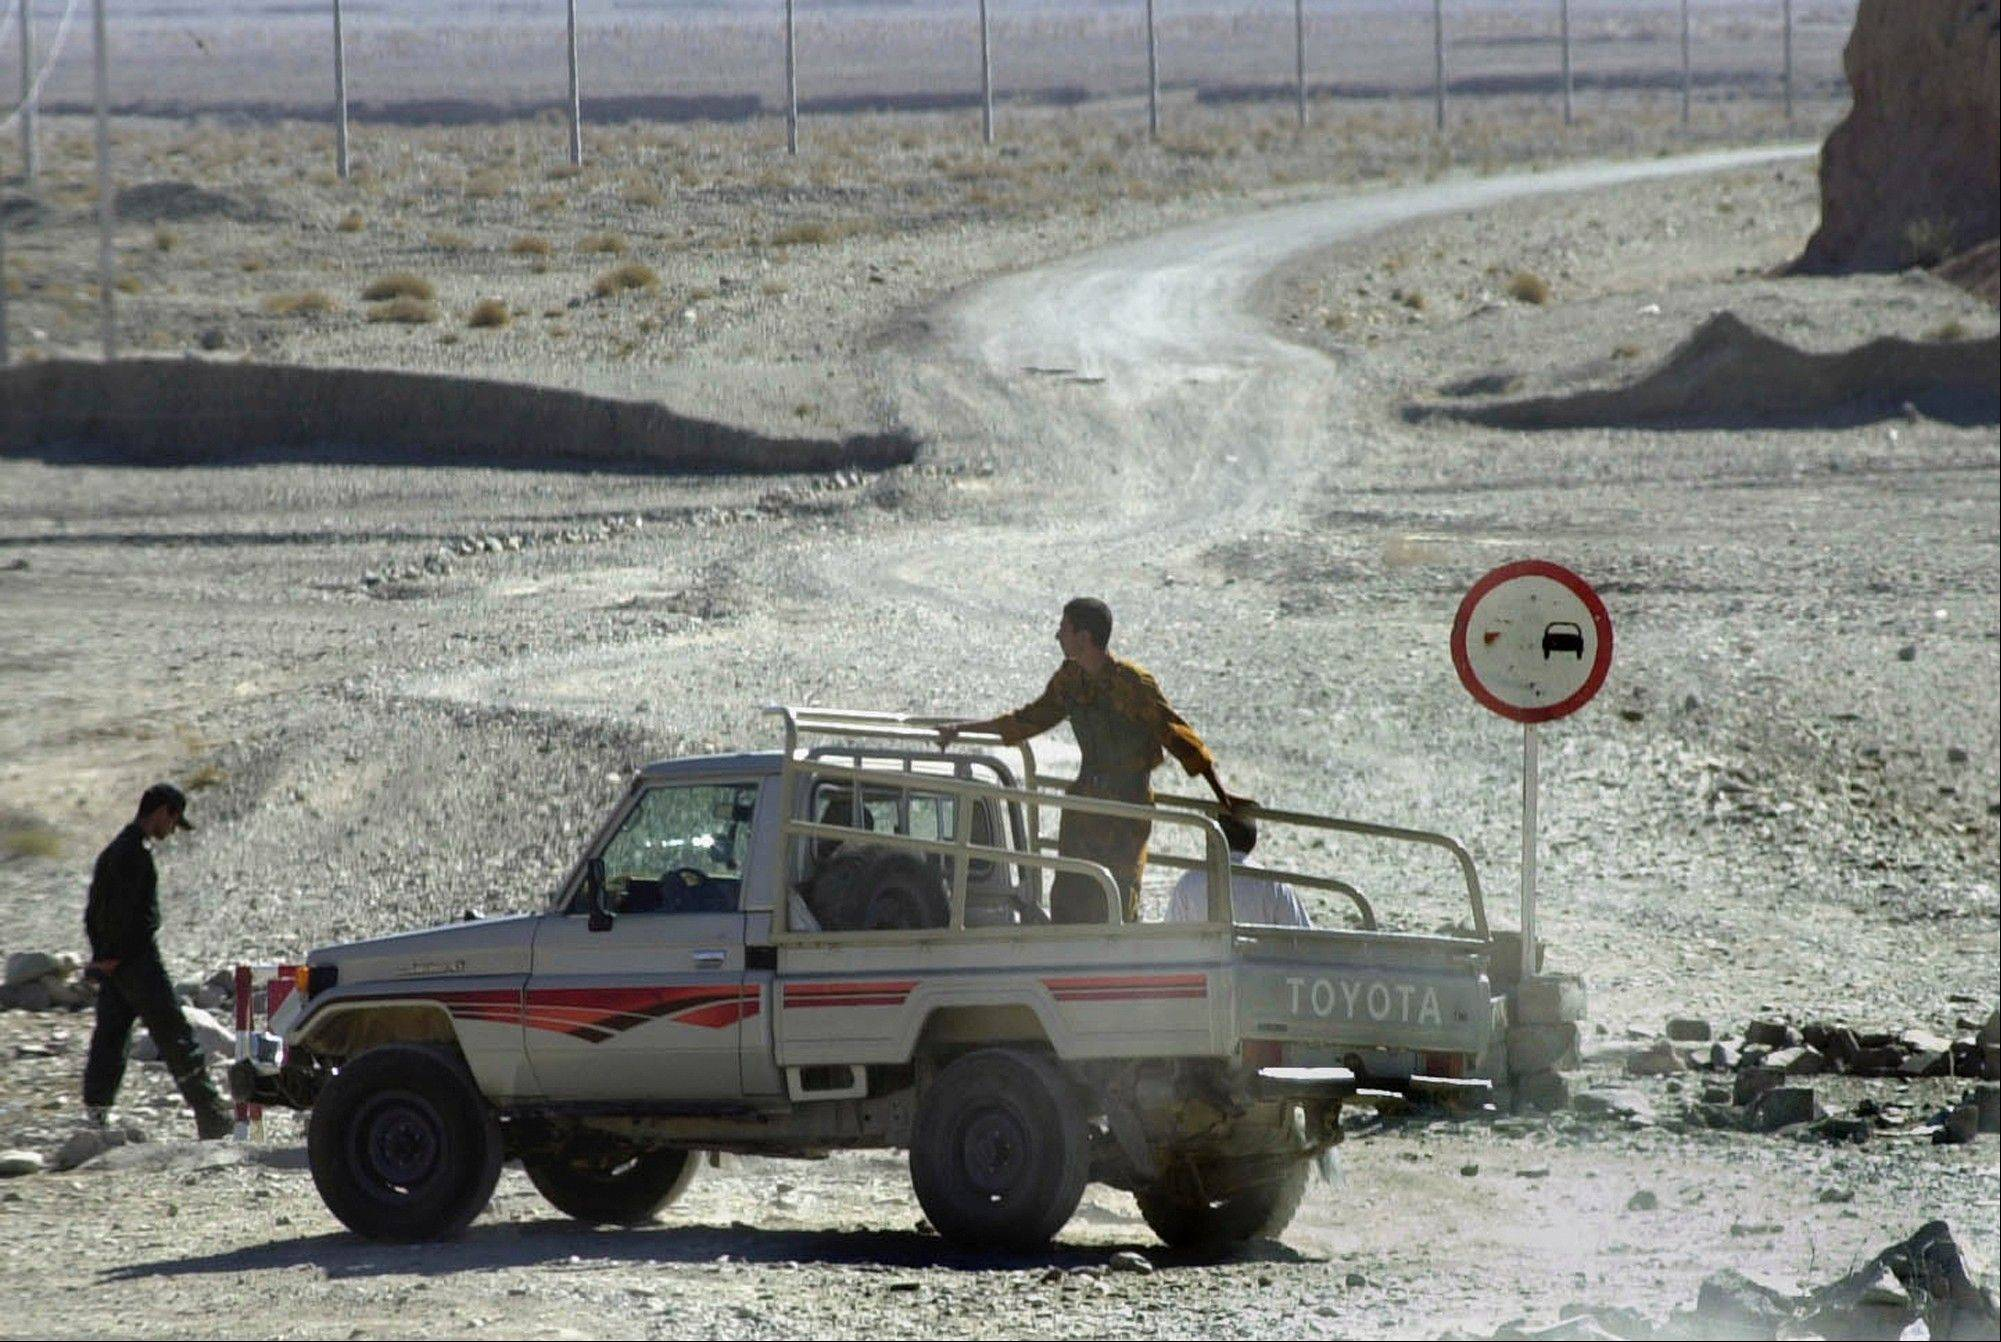 Iranian border guards watch for Afghan refugees on a road which leads to Afghanistan at the Ghargharook checkpoint on the Iran-Afghanistan border. A former Bush administration official told the AP in 2008 that Iran had rounded up hundreds of Arabs who had crossed the border from Afghanistan, expelled many of them and made copies of nearly 300 of their passports in an effort to help the U.S. counter al-Qaida after Sept. 11, 2001. It was a moment of rare common purpose between Iran and Washington that could have opened doors for greater diplomatic overtures.